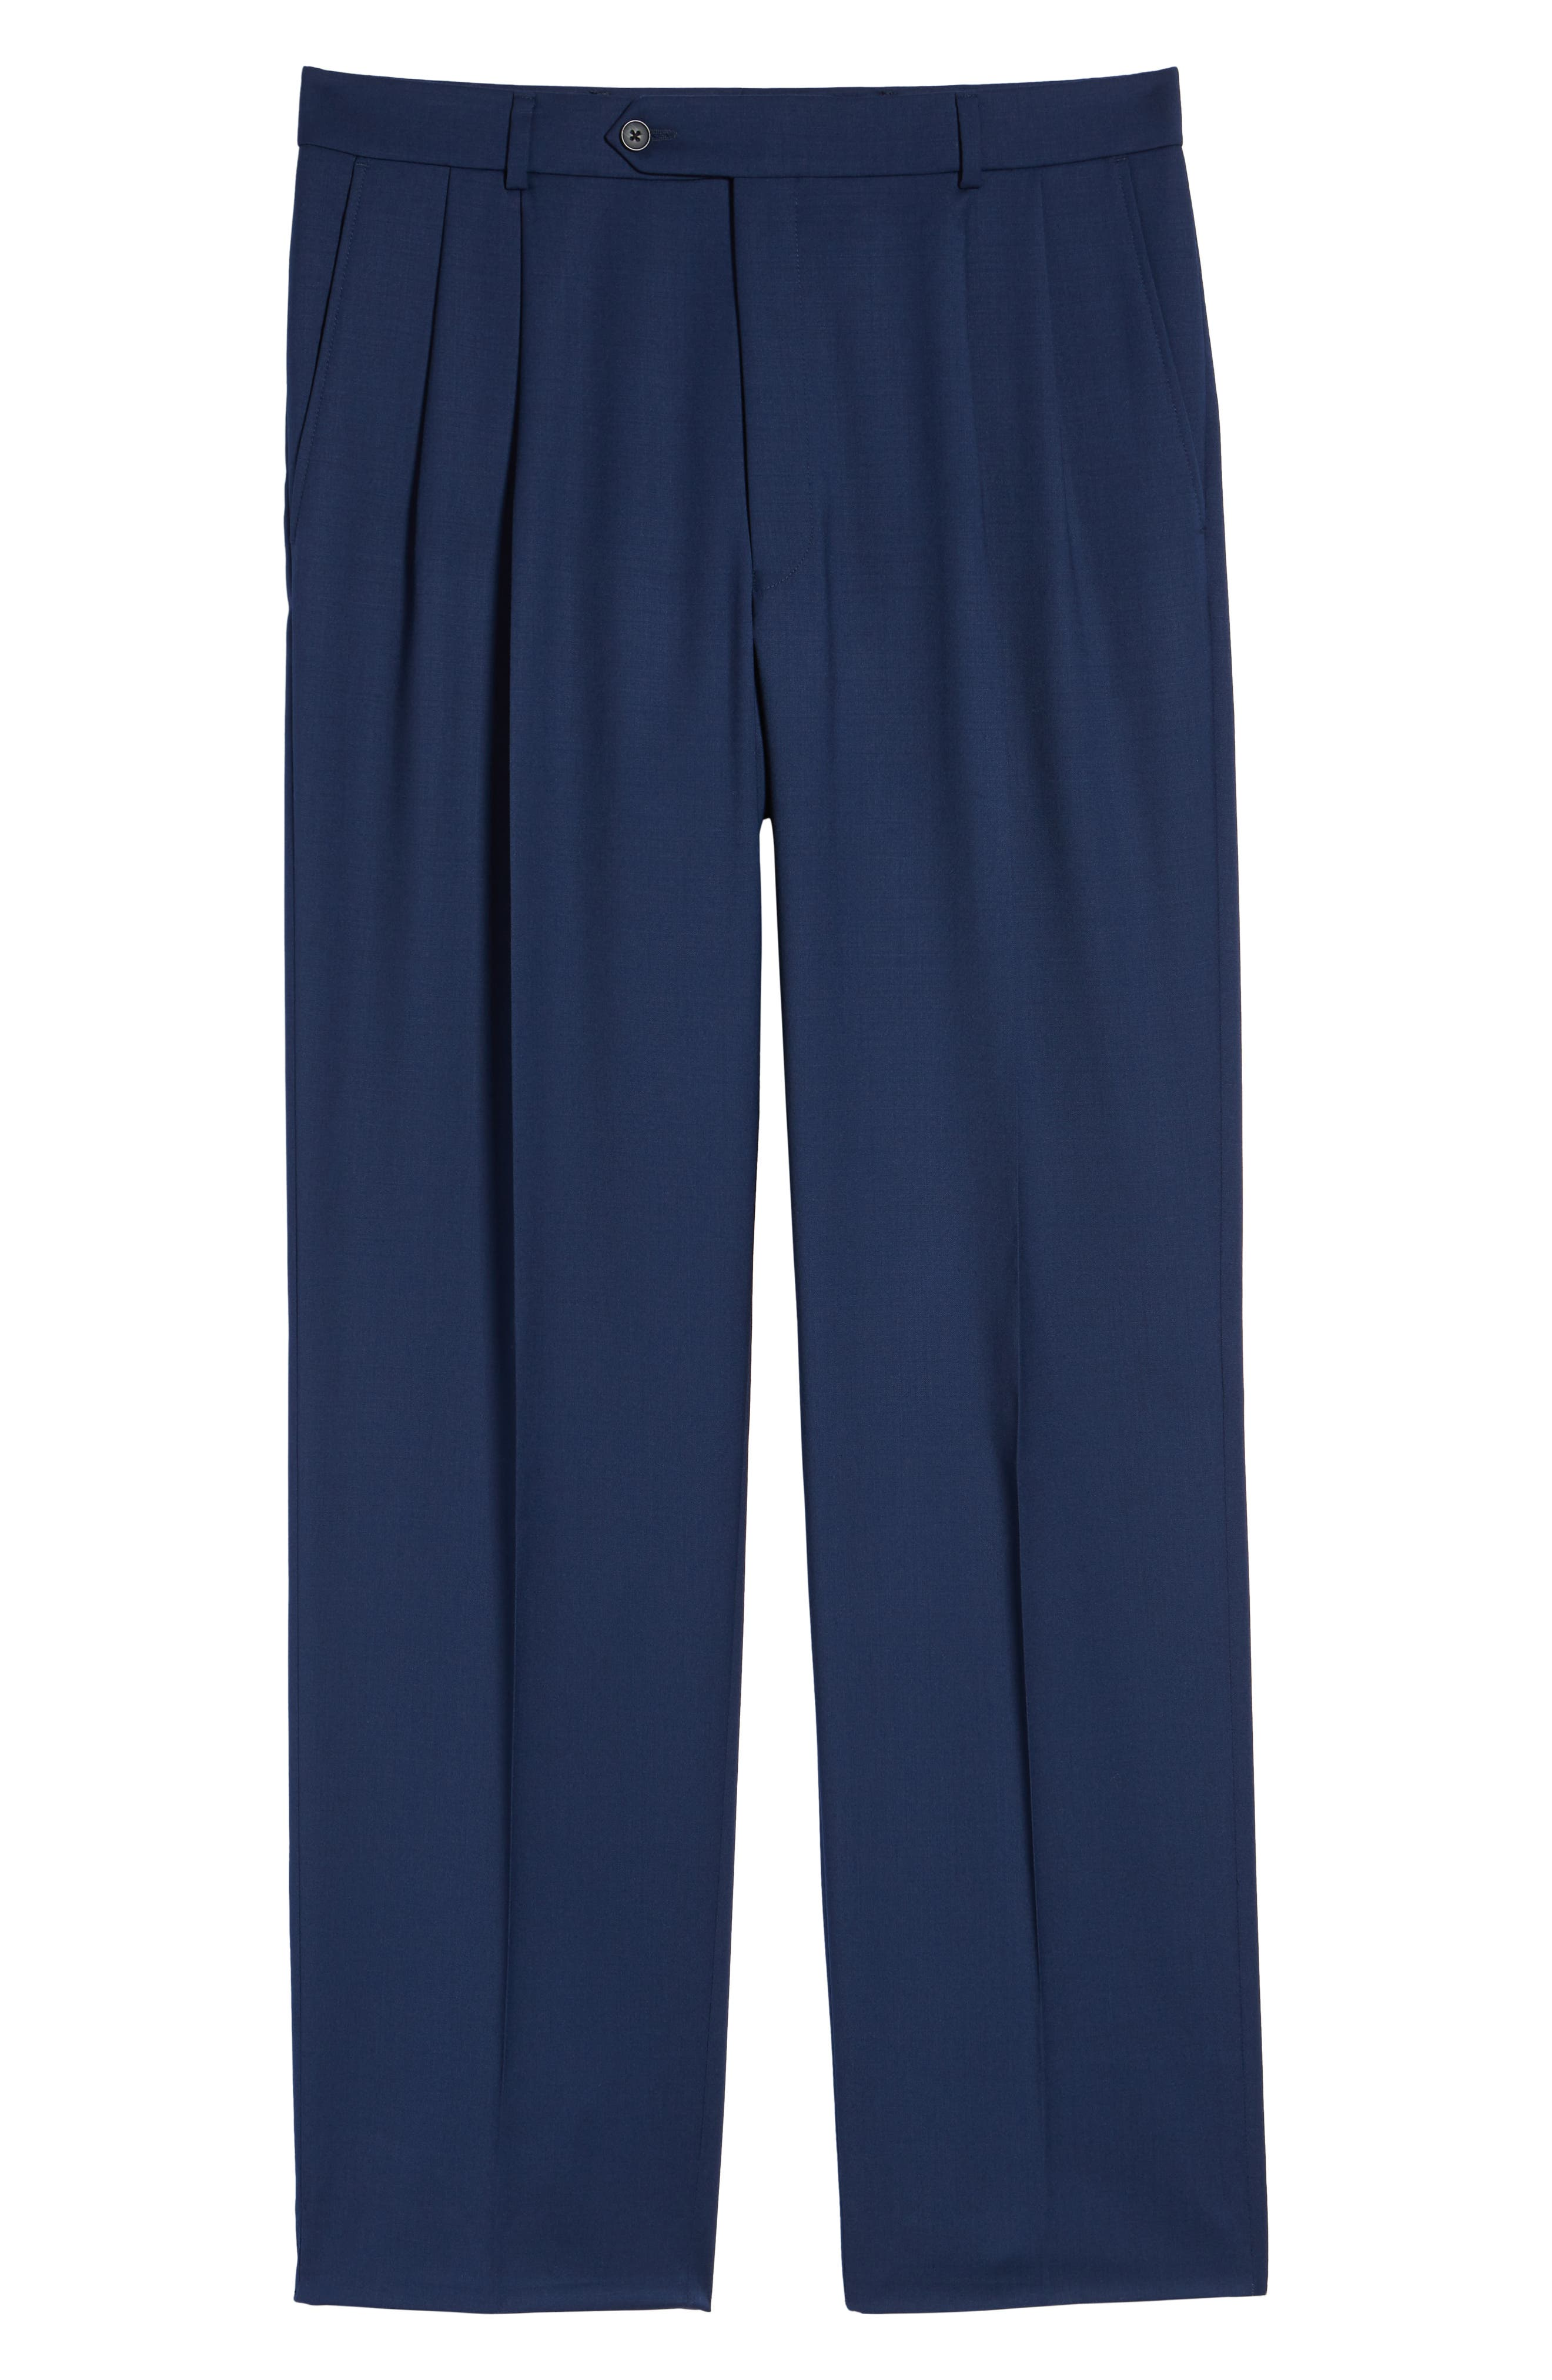 Pleated Solid Wool Trousers,                             Alternate thumbnail 67, color,